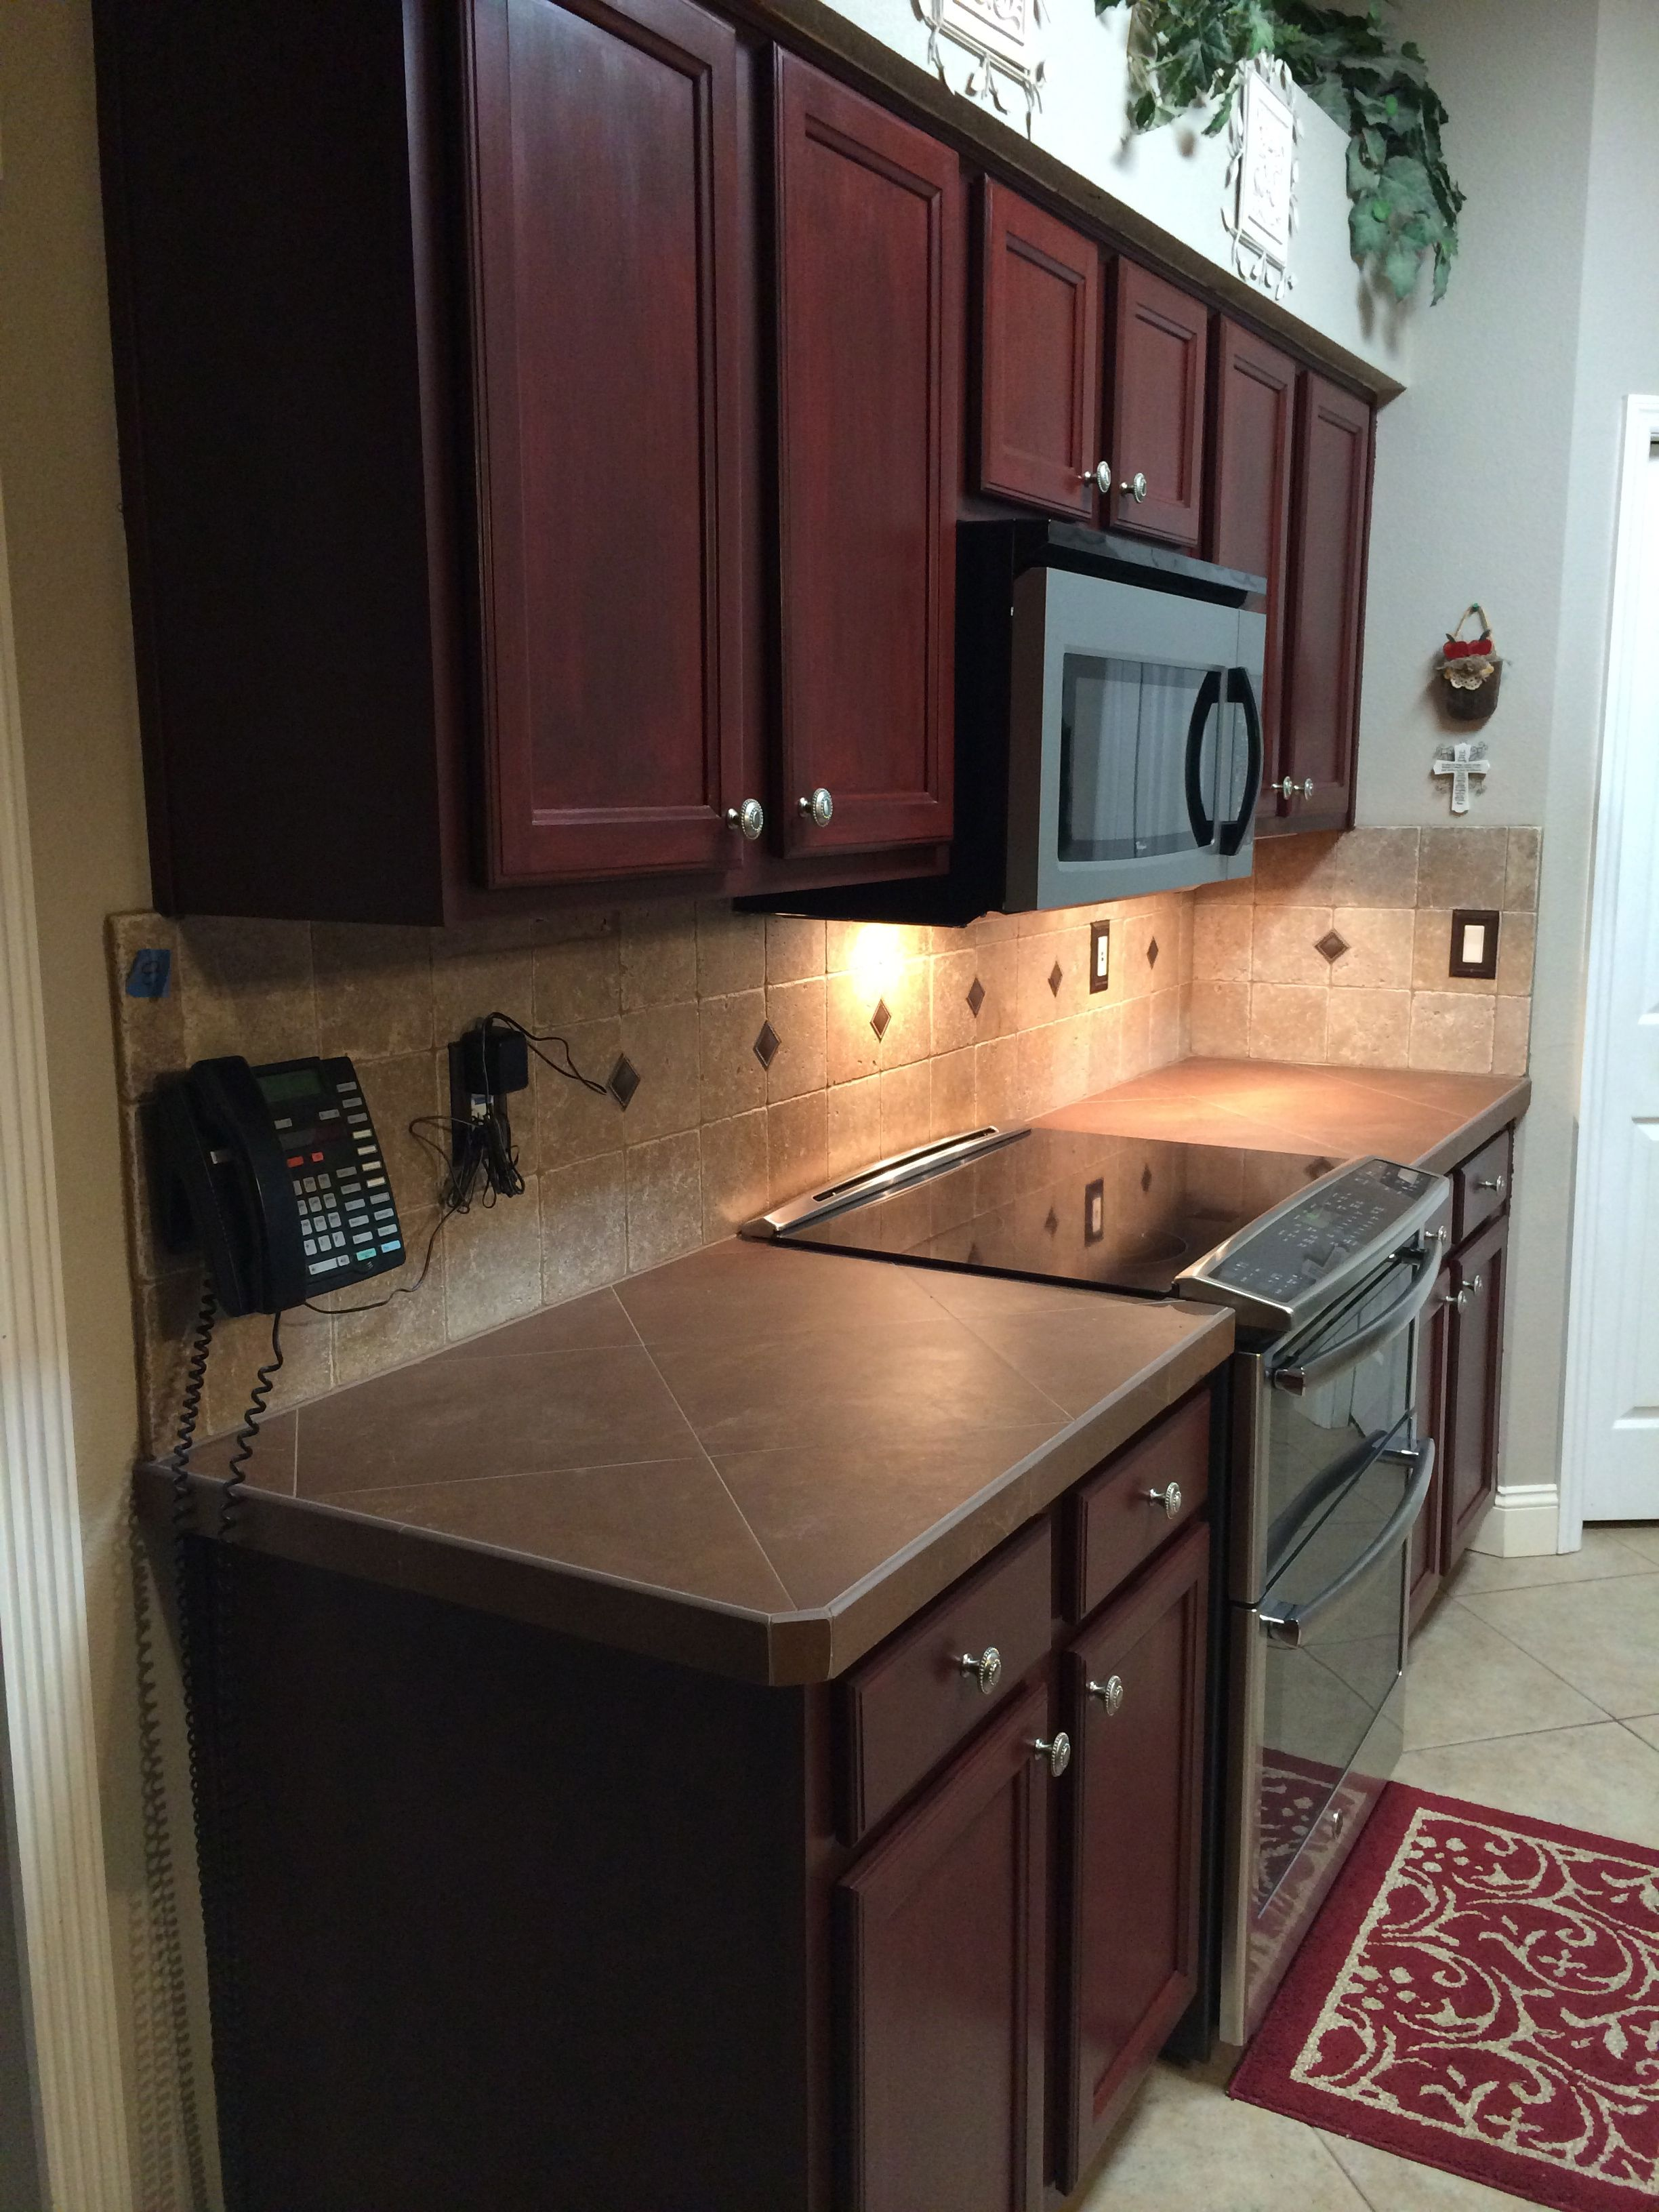 Done We Love How It Looks Now Every Time We Walk In We Think We Re In Someone Else S House Kitchen Remodel Rustoleum Cabinet Rustoleum Cabinet Transformation